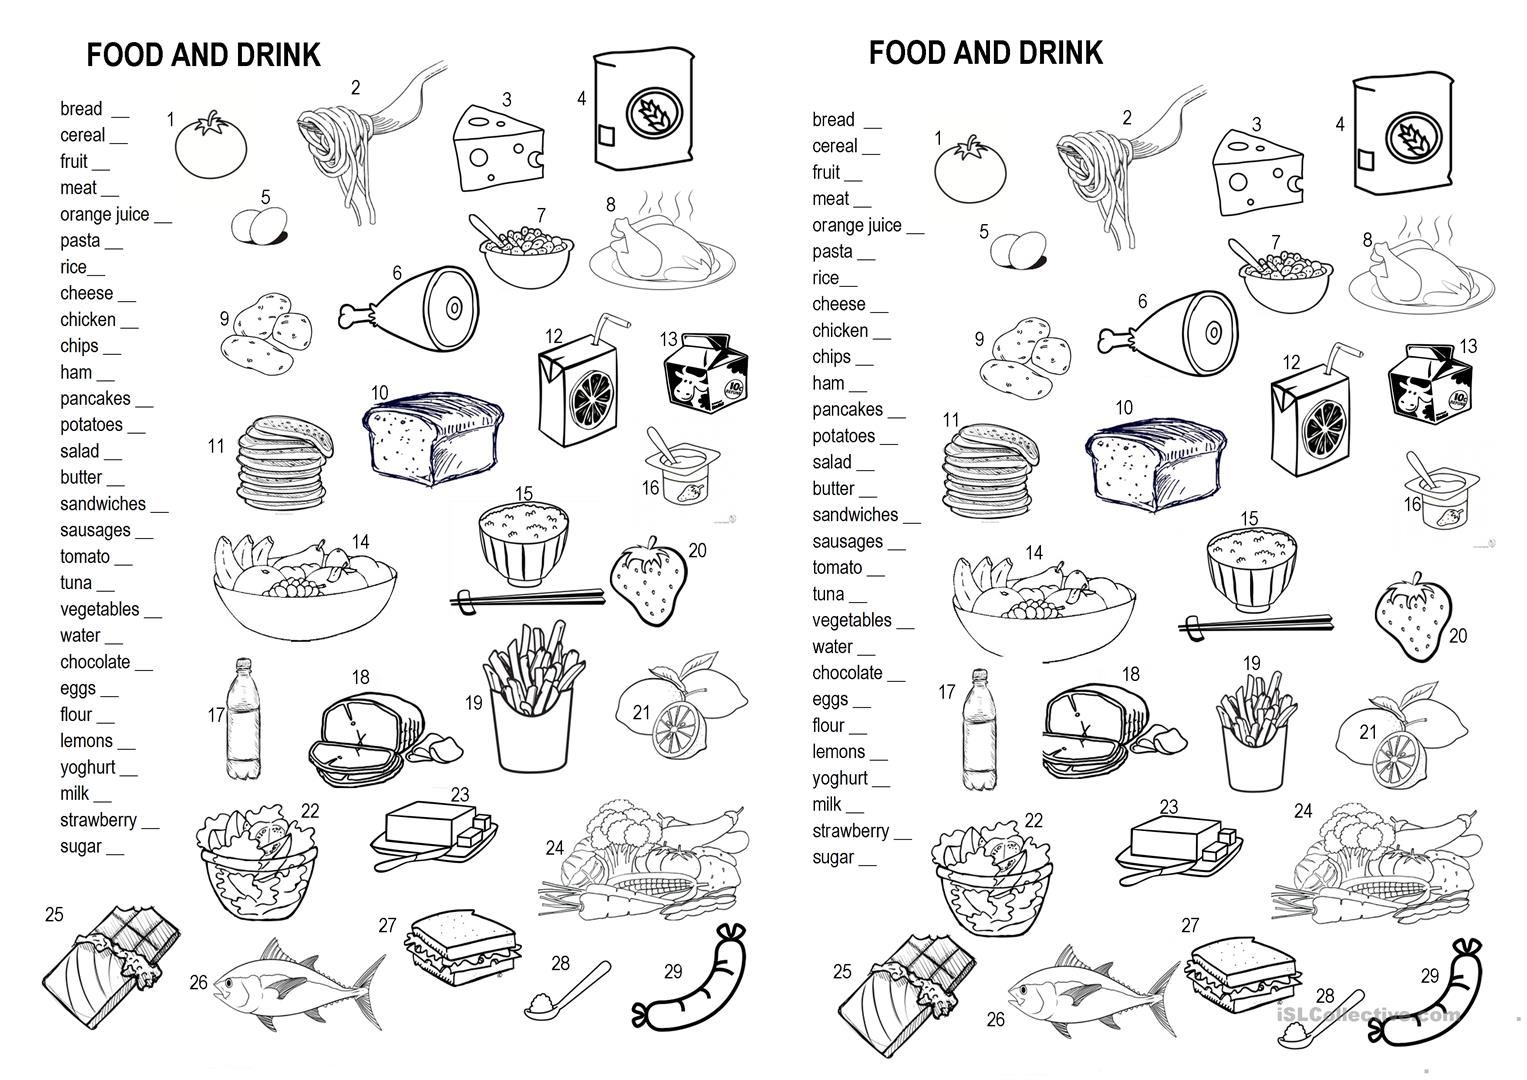 Drinks And Food Worksheet